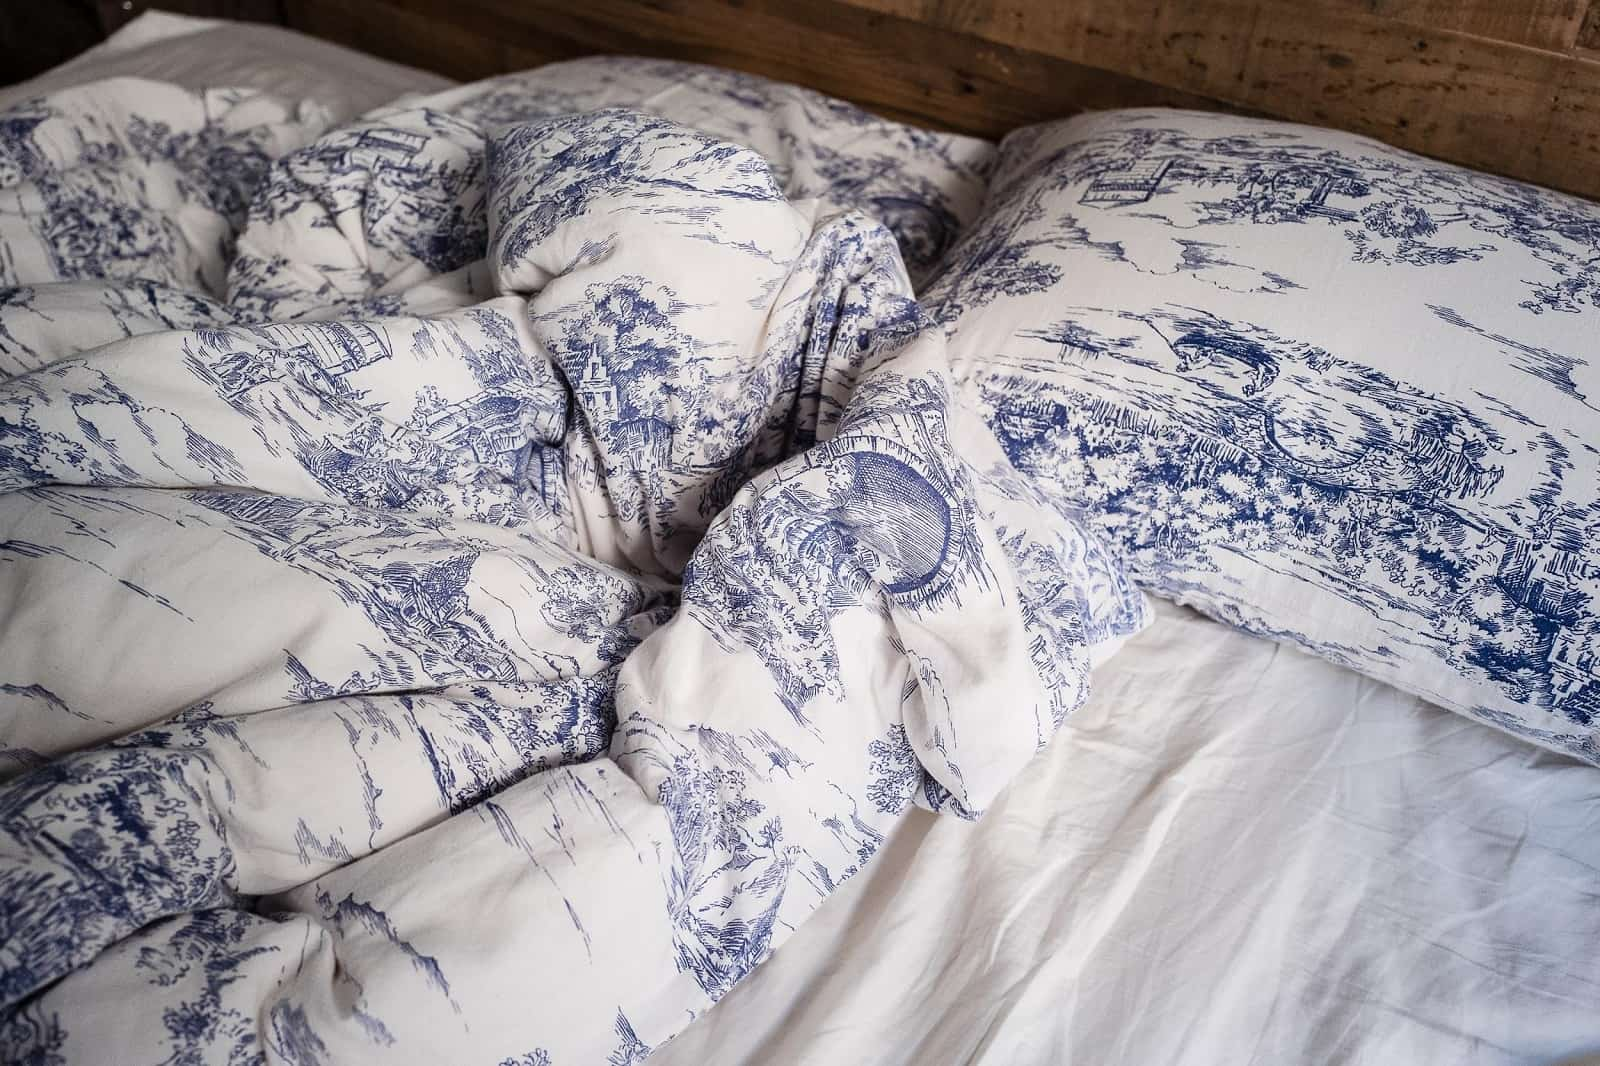 Choosing The Perfect Bed Sheets: Should You Choose Bamboo Sheets? Nice cozy white linen with blue pattern